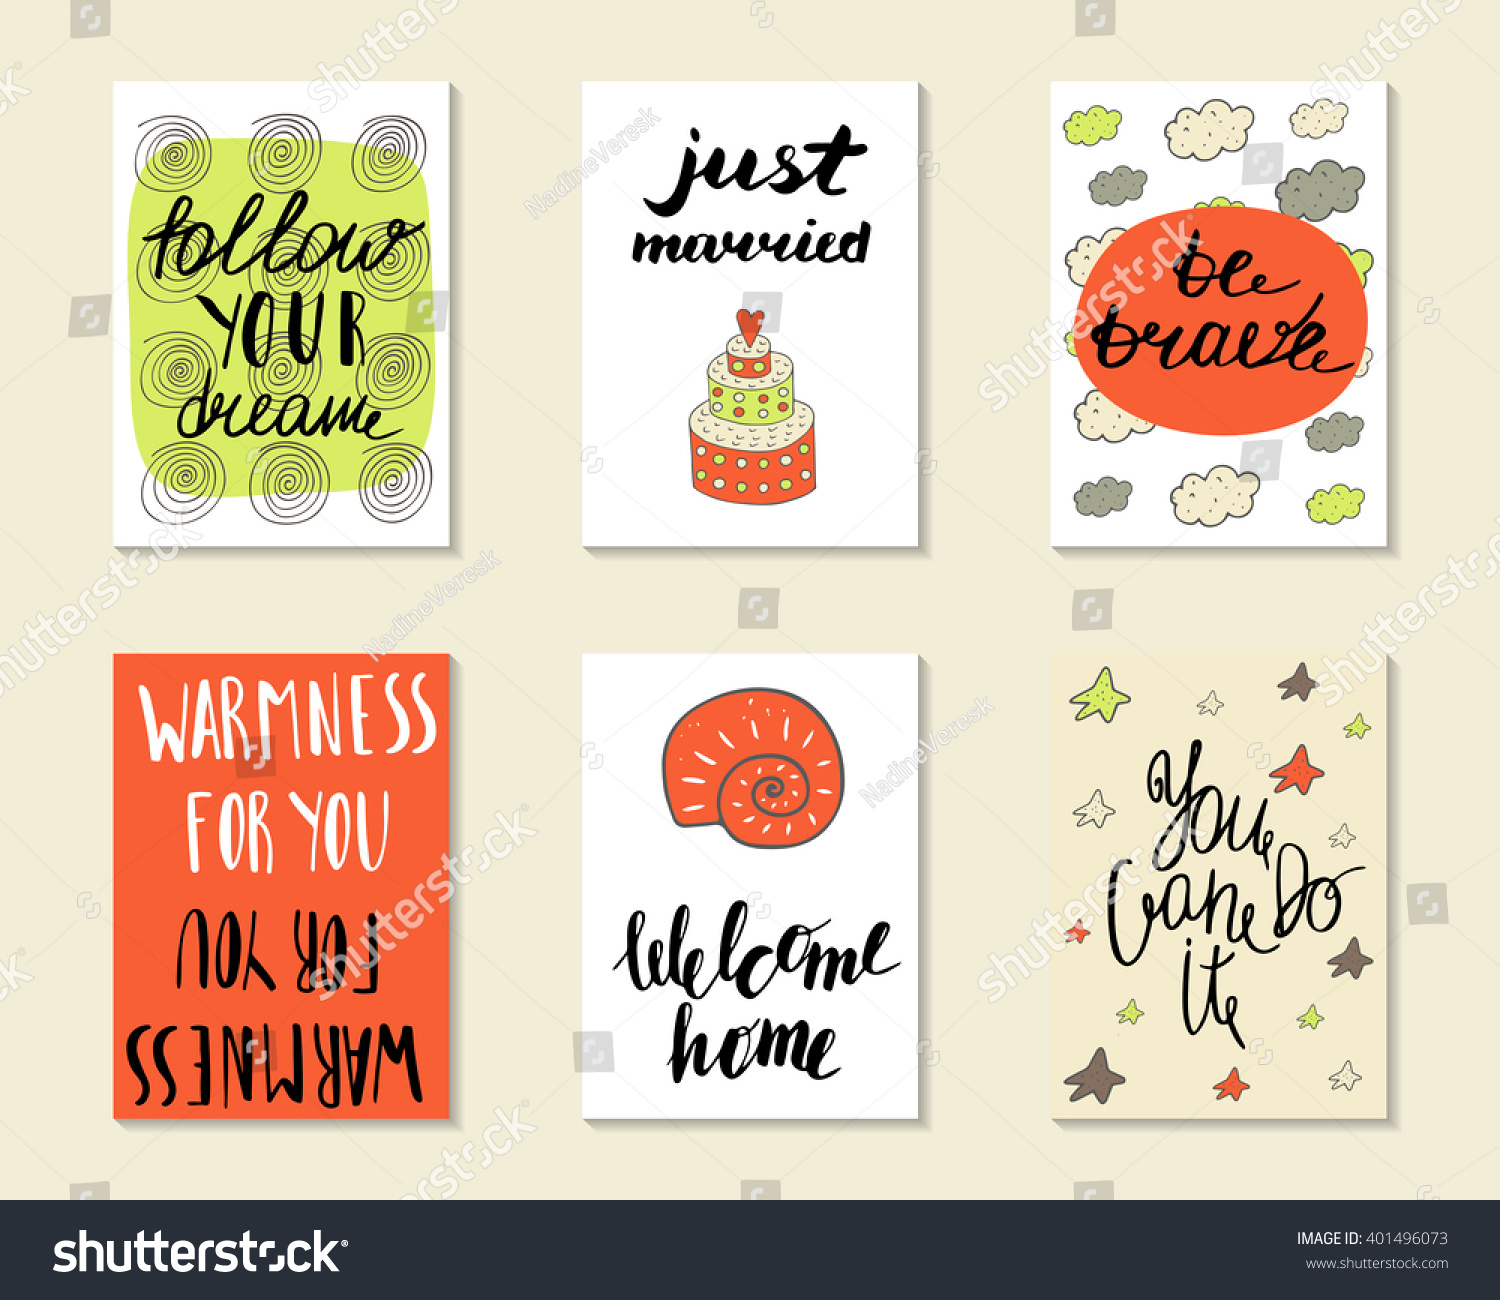 Just Married Quotes Cute Hand Drawn Doodle Postcards Cards Stock Vector 401496073